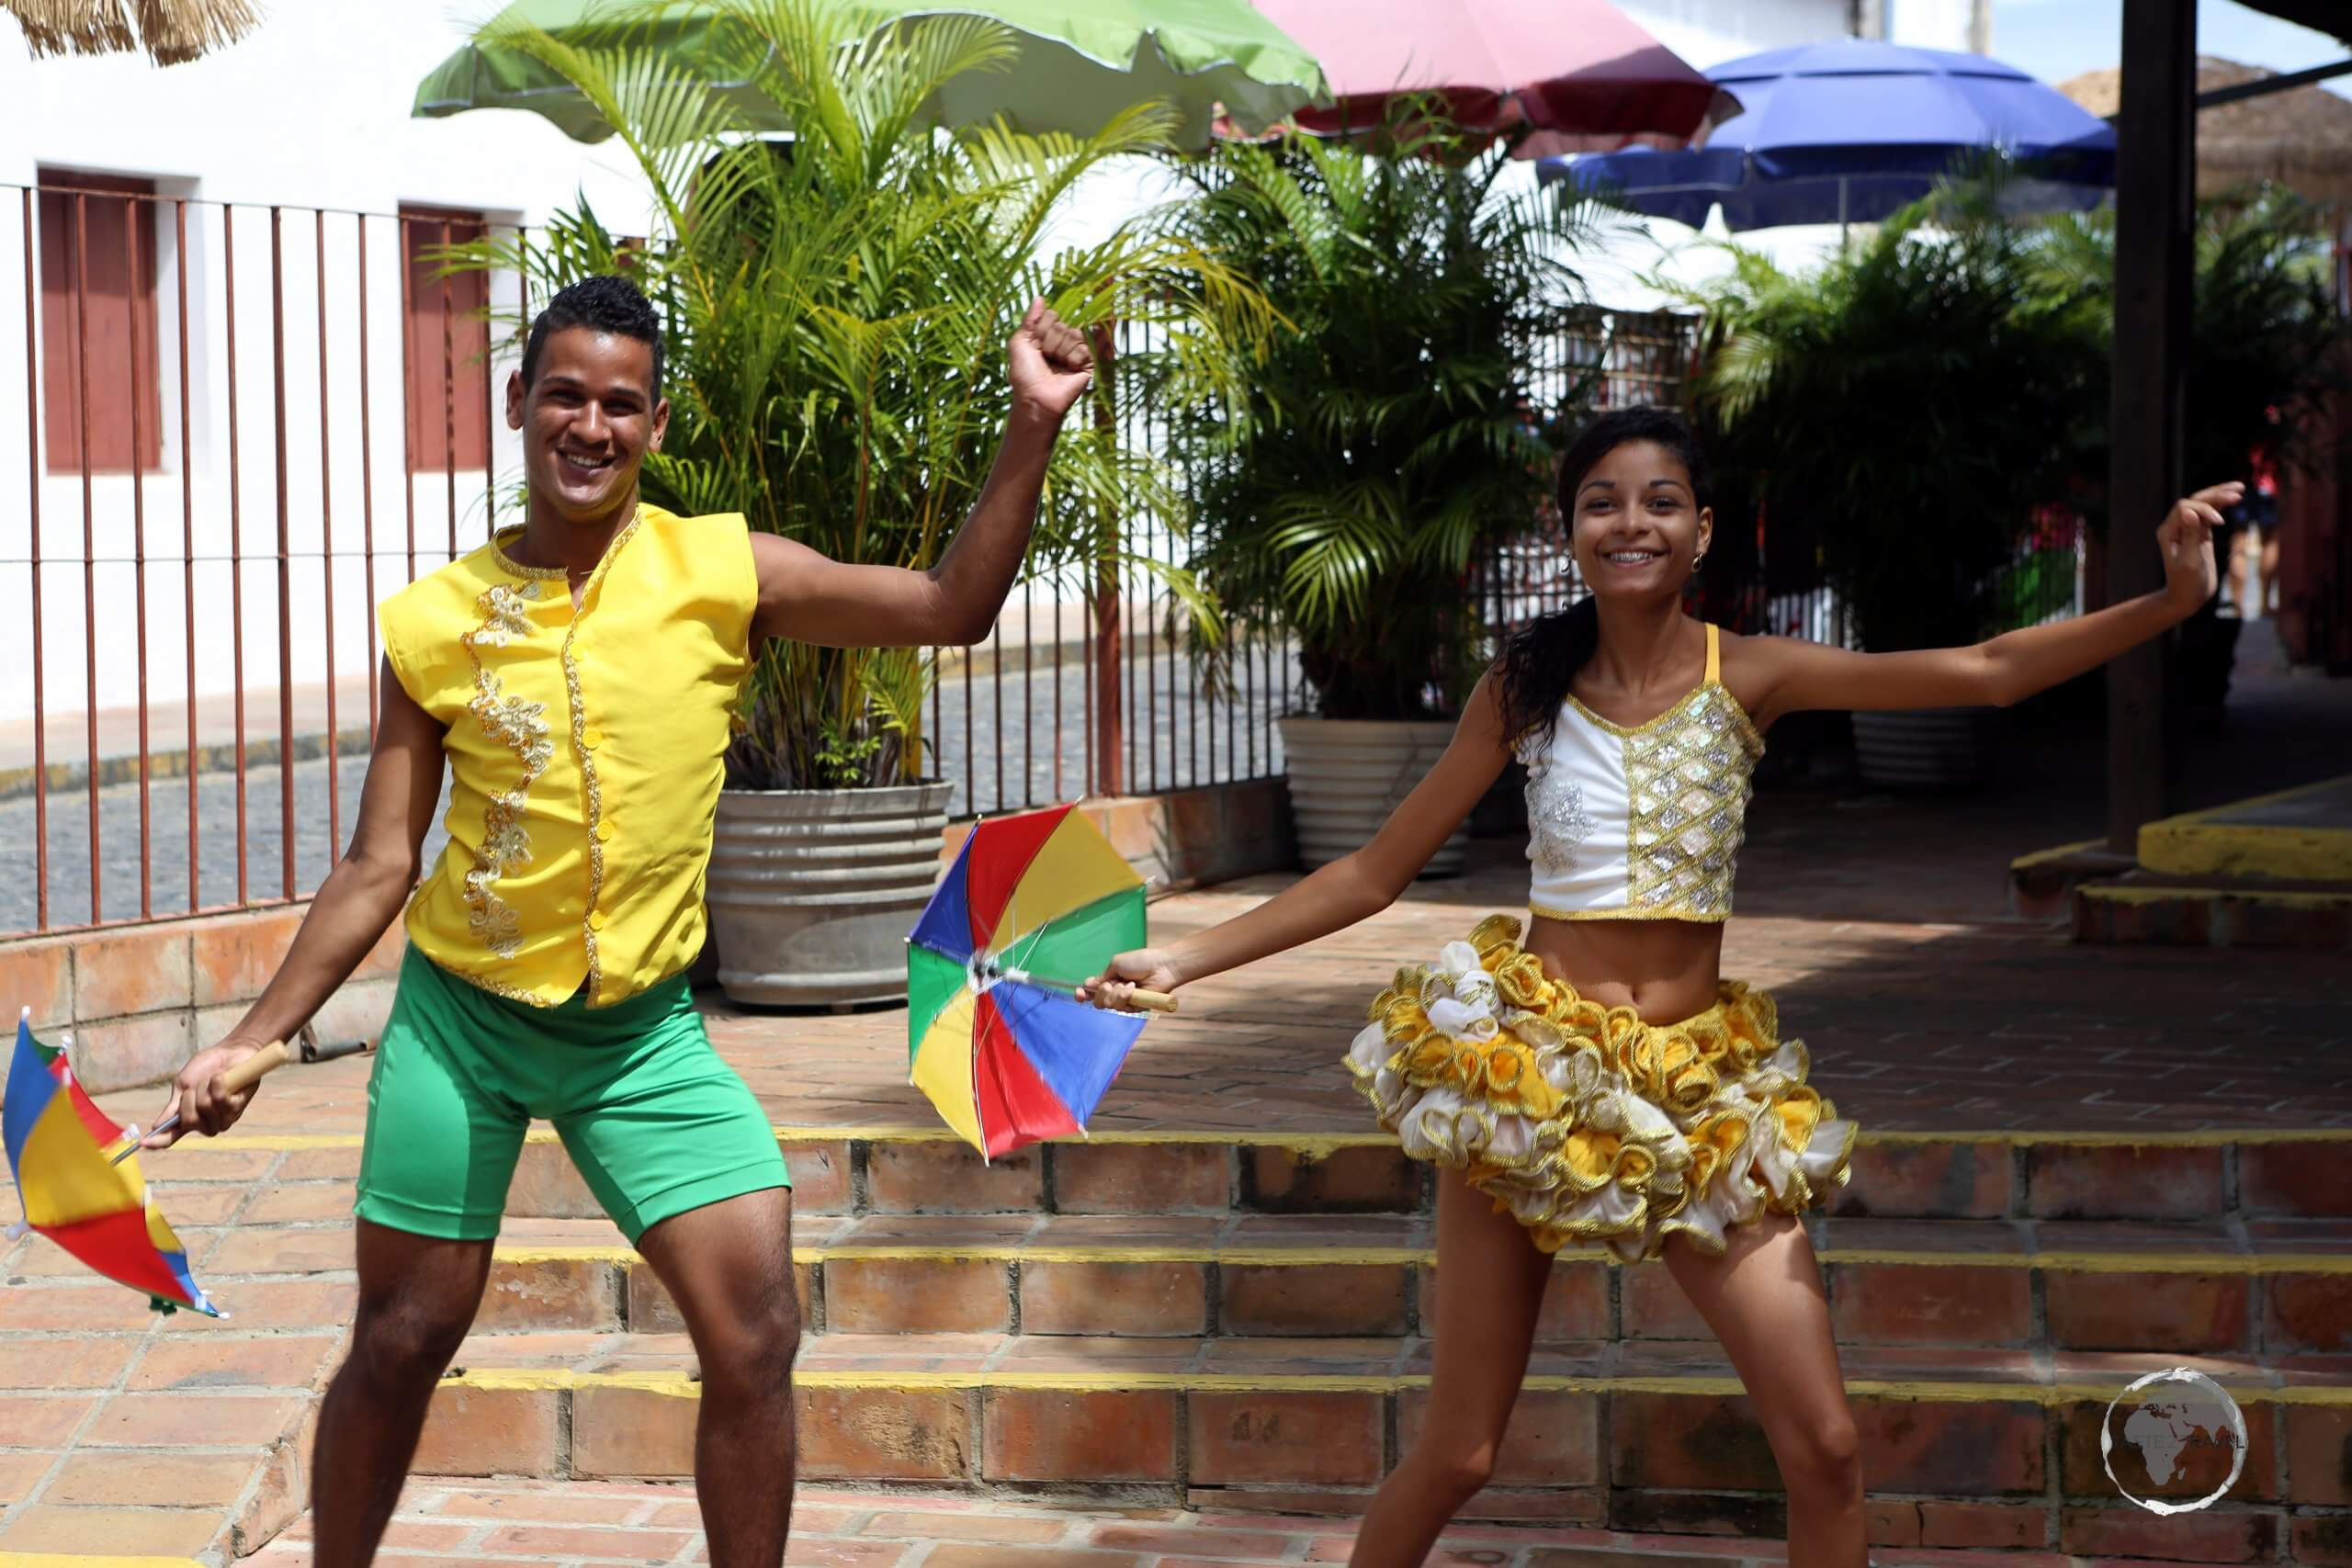 Frevo is a dance and musical style originating from Recife, Pernambuco, Brazil, traditionally associated with Brazilian Carnival.